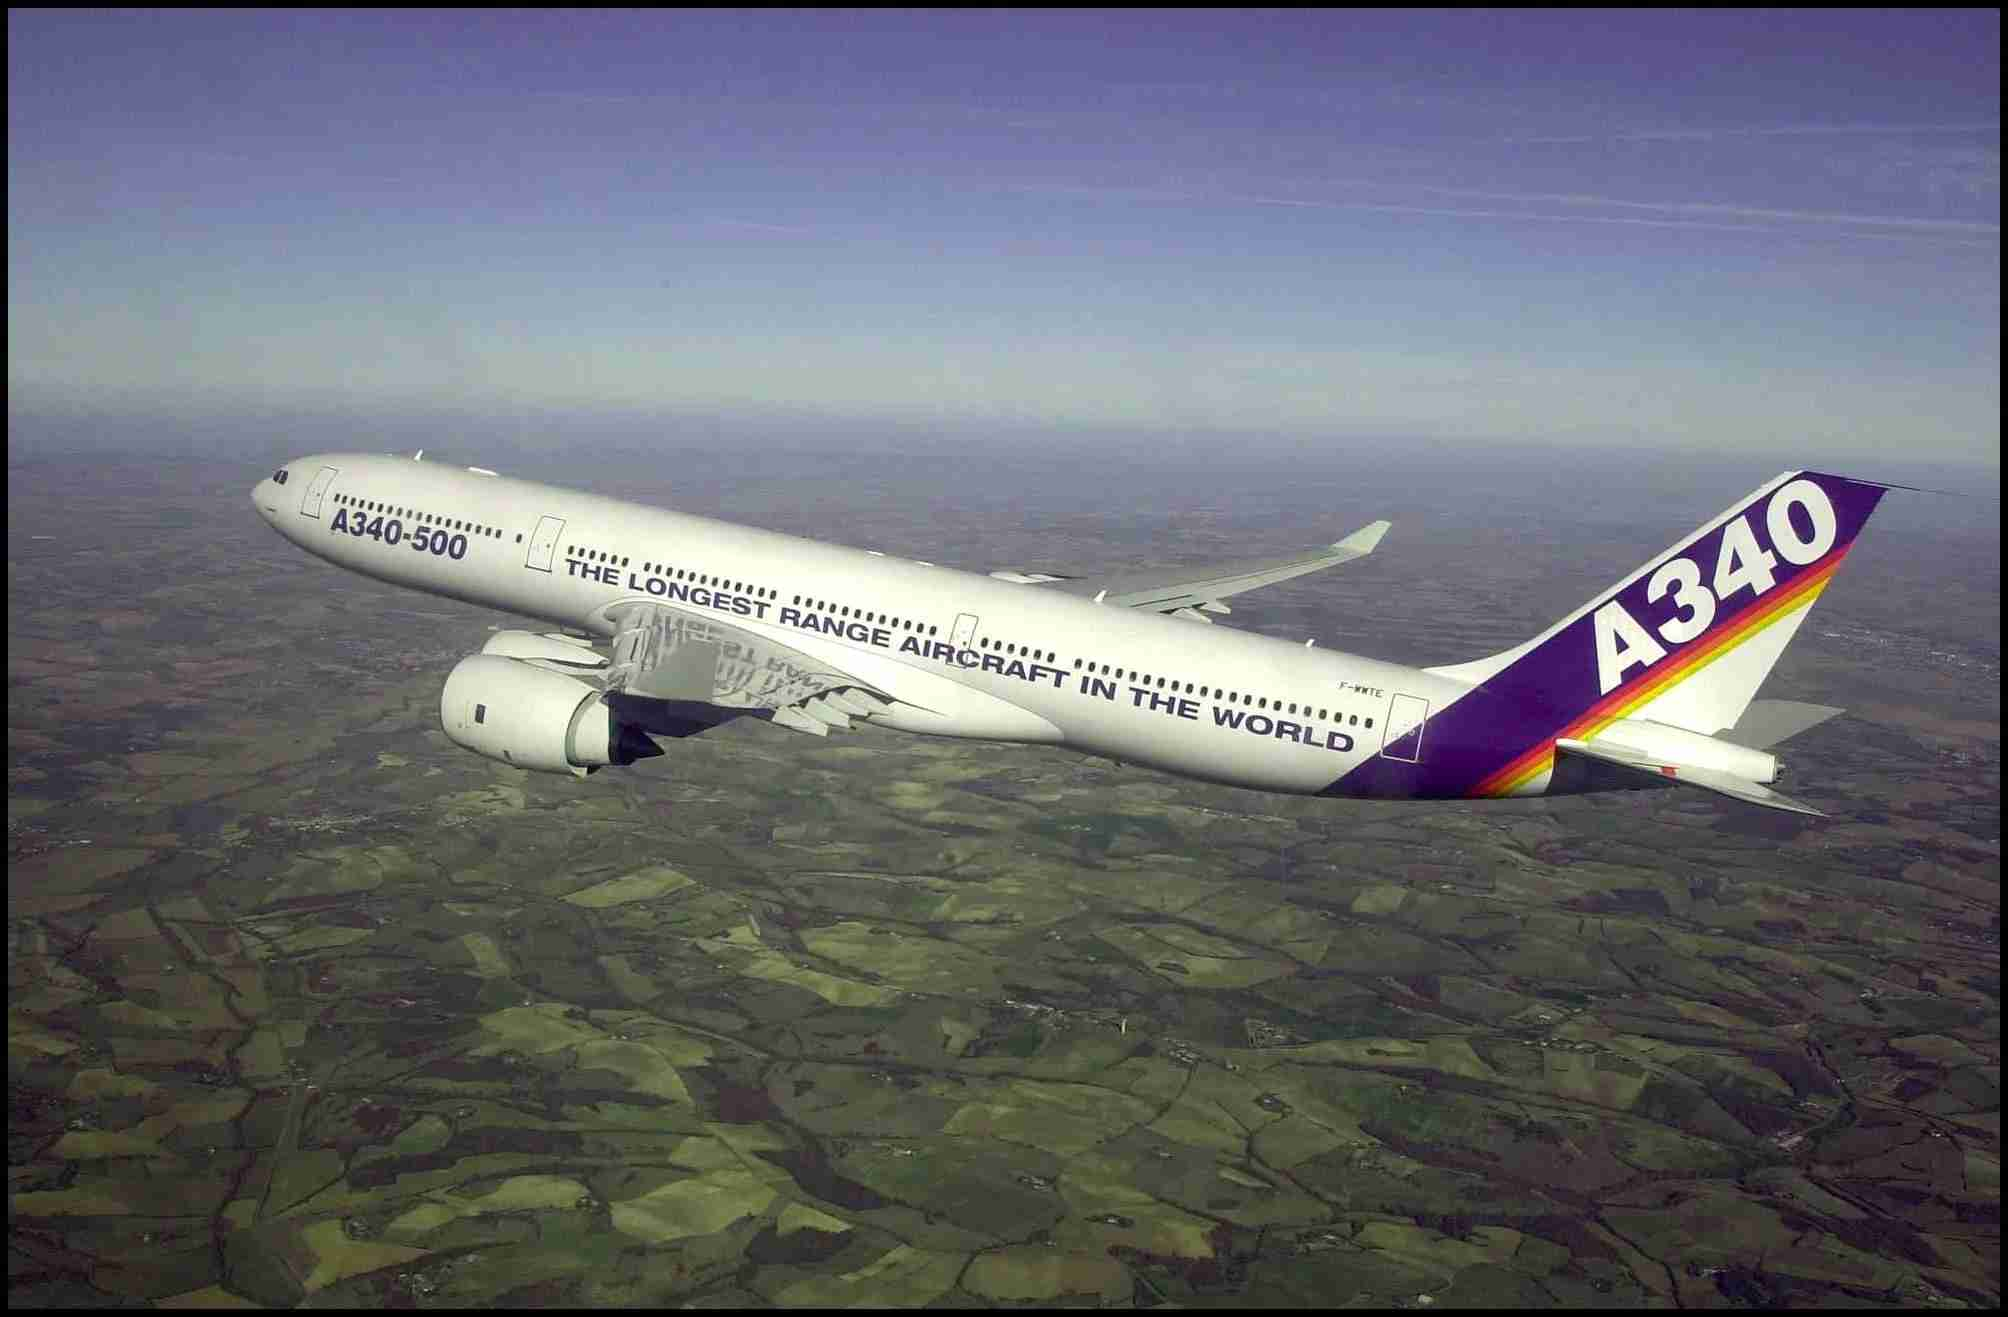 """FRANCE - FEBRUARY 11: Airbus latest plane in an """"ultra long -haul aircraft A340 -500"""" took off its first flight in Toulouse, France on February 11, 2002. (Photo by 2086/Gamma-Rapho via Getty Images)"""